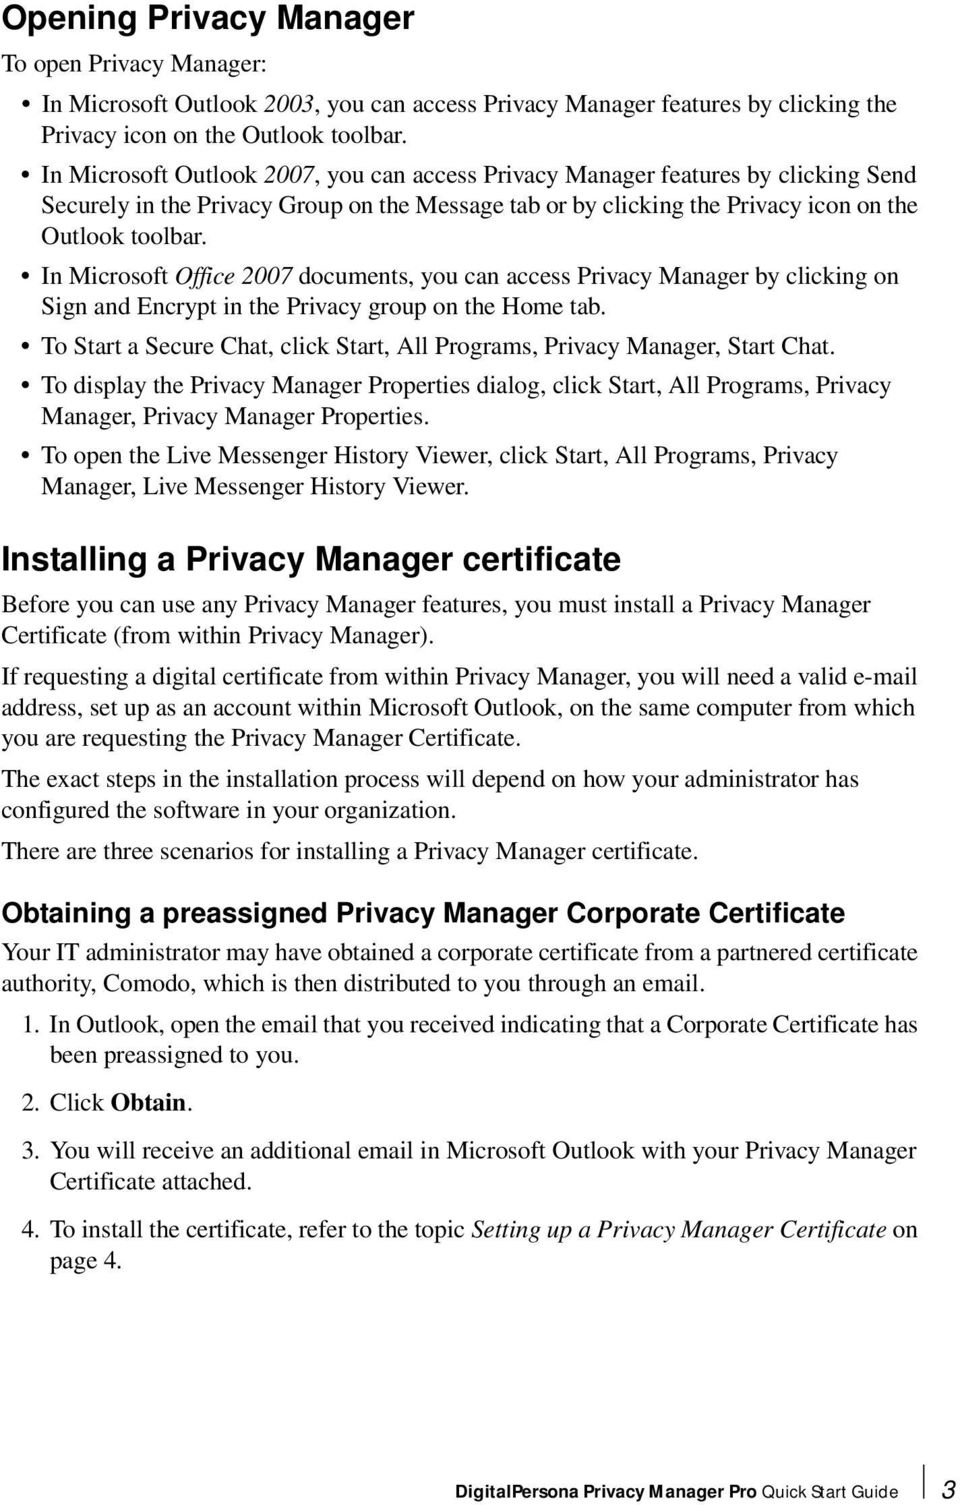 In Microsoft Office 2007 documents, you can access Privacy Manager by clicking on Sign and Encrypt in the Privacy group on the Home tab.